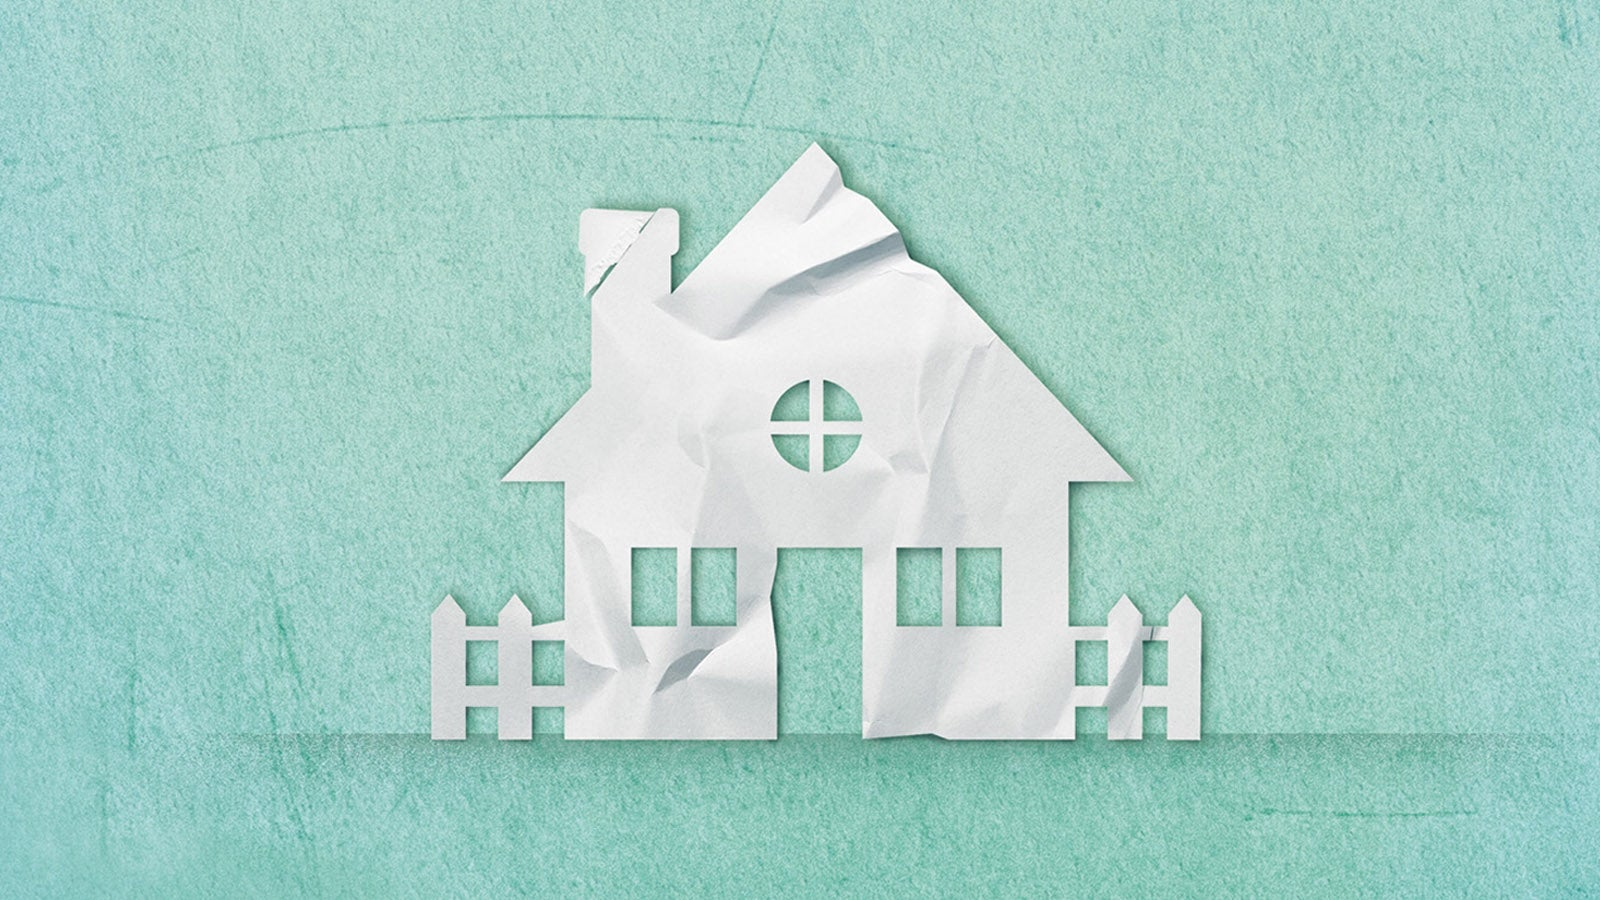 House with three windows, chimney and picket fence cut out of paper on a blue background